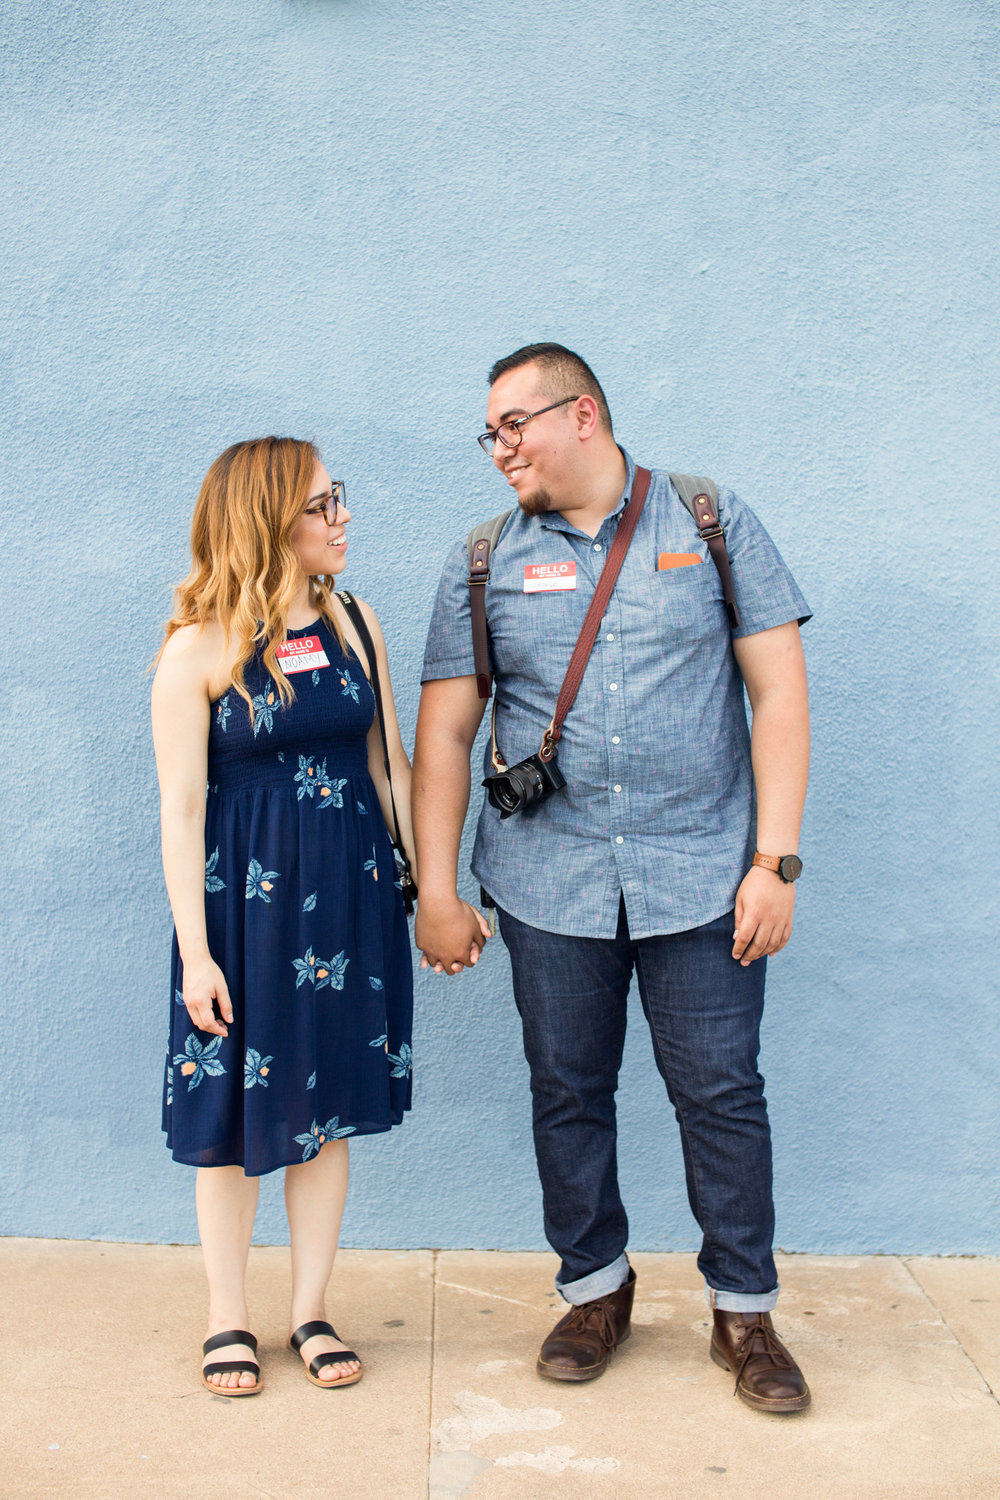 Community members and cutest couple at the Instameet  @noamyl and @photographybyjessetorres